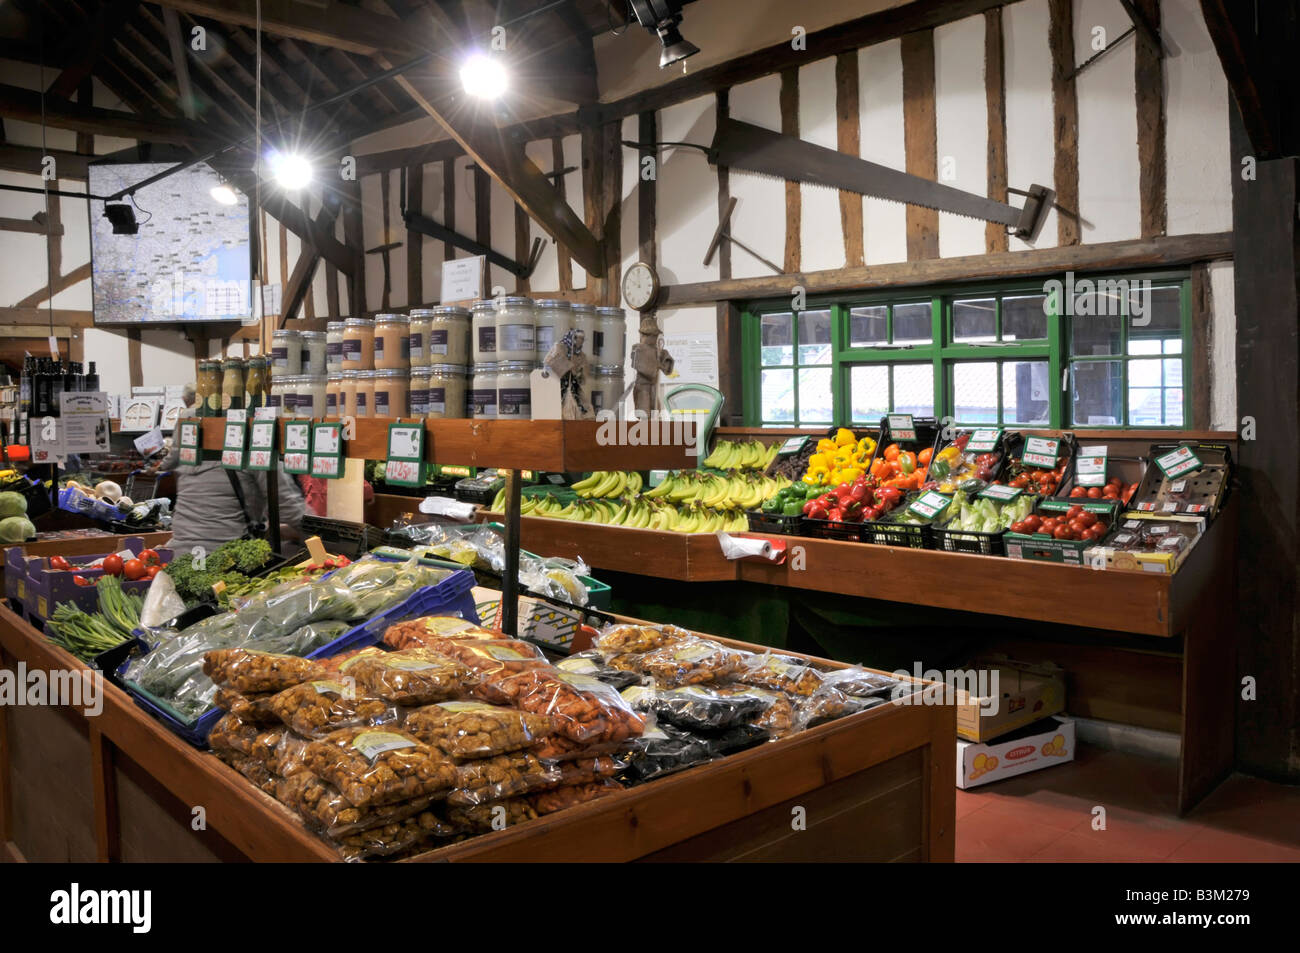 Interior of retail farm shop fruit and general produce on display - Stock Image